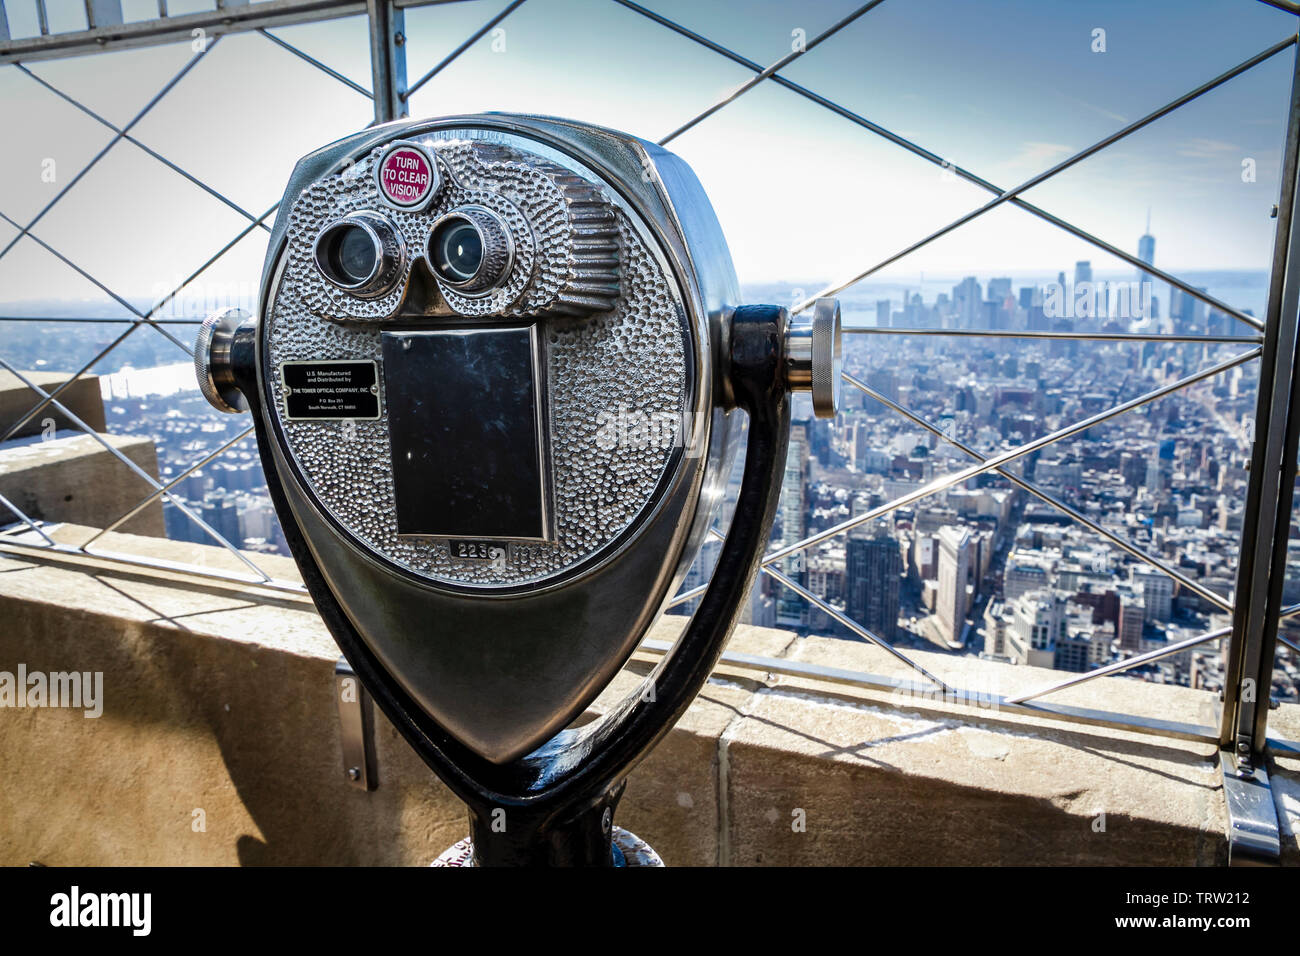 fff9a51cef Tower Optical company binocular viewer on the 86th floor of the Empire  State Building. -